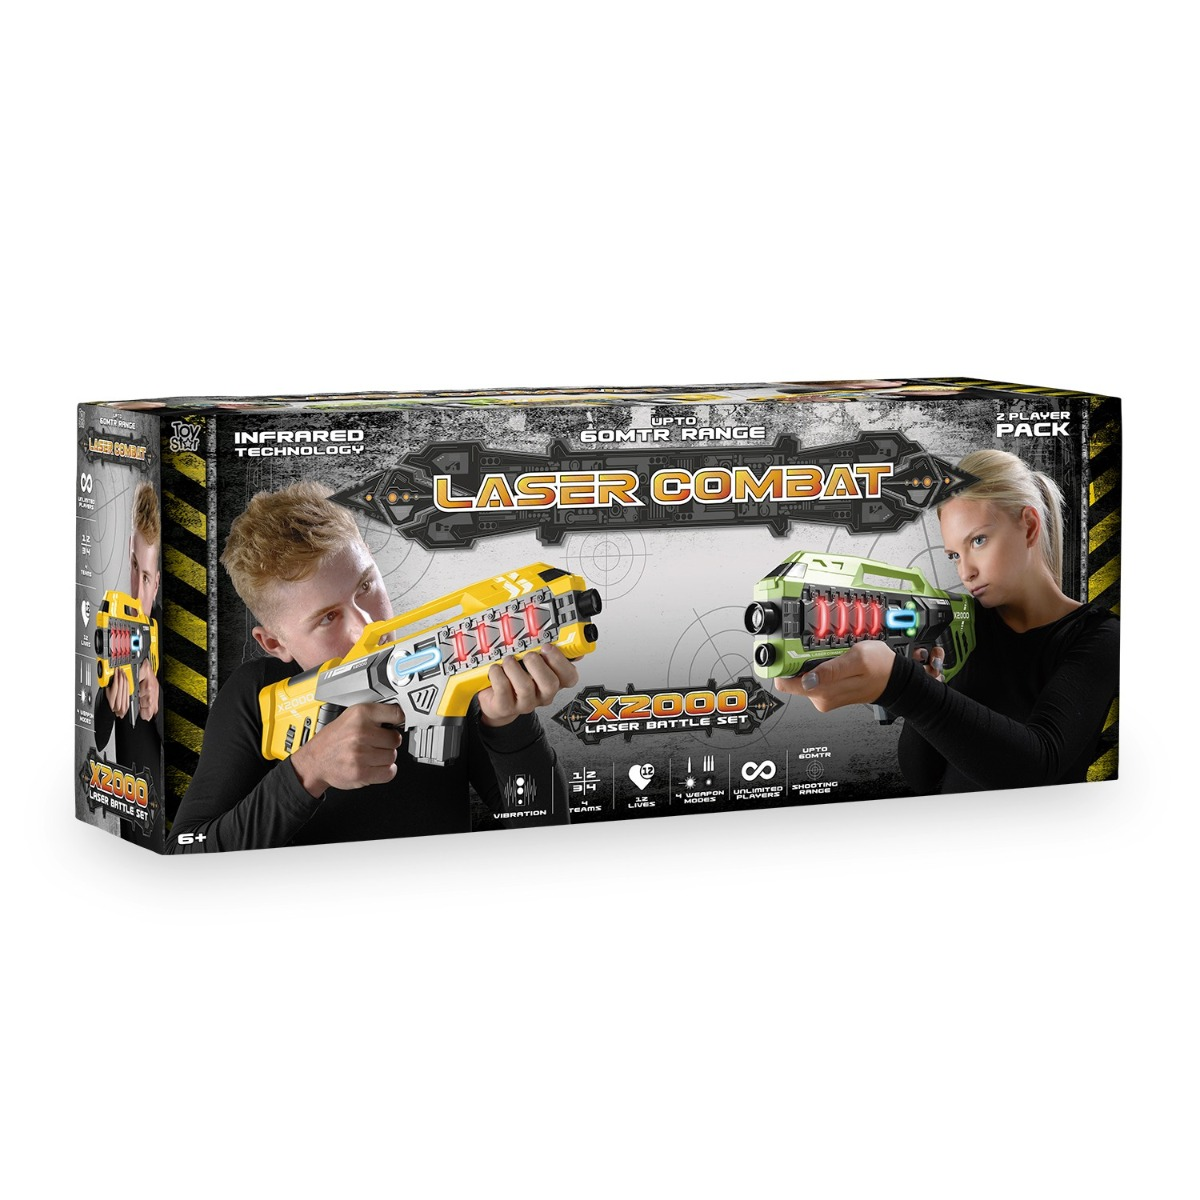 Laser-Tag-Game-Kids-Electronic-2-Blaster-Gun-Battle-Set-60m-Shooting-Range thumbnail 13